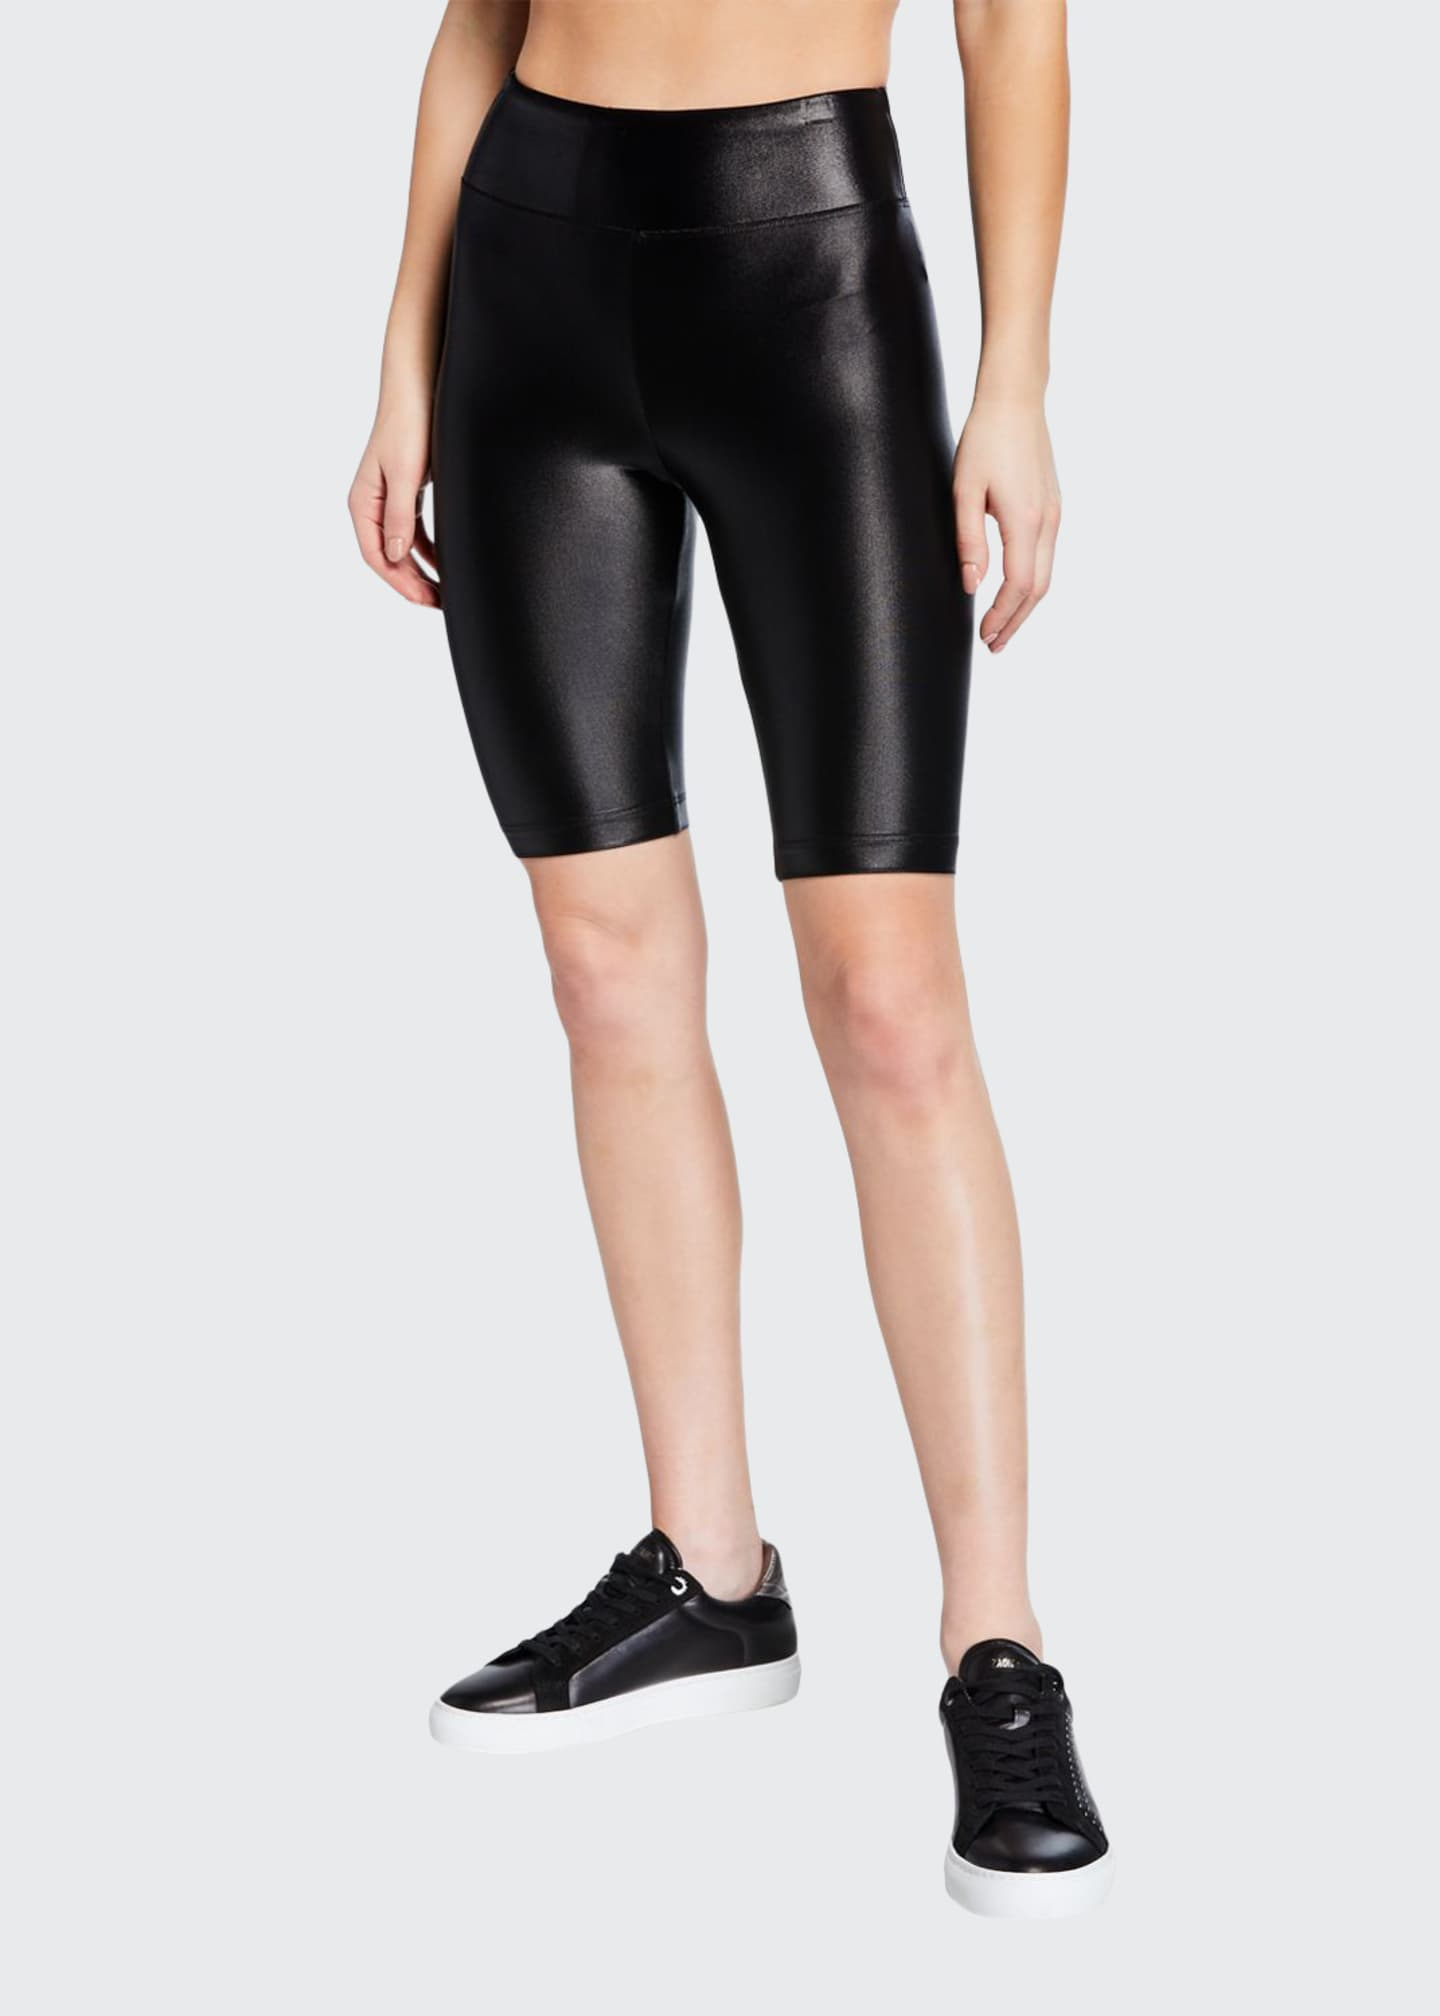 Koral Densonic High-Rise Infinity Bike Shorts